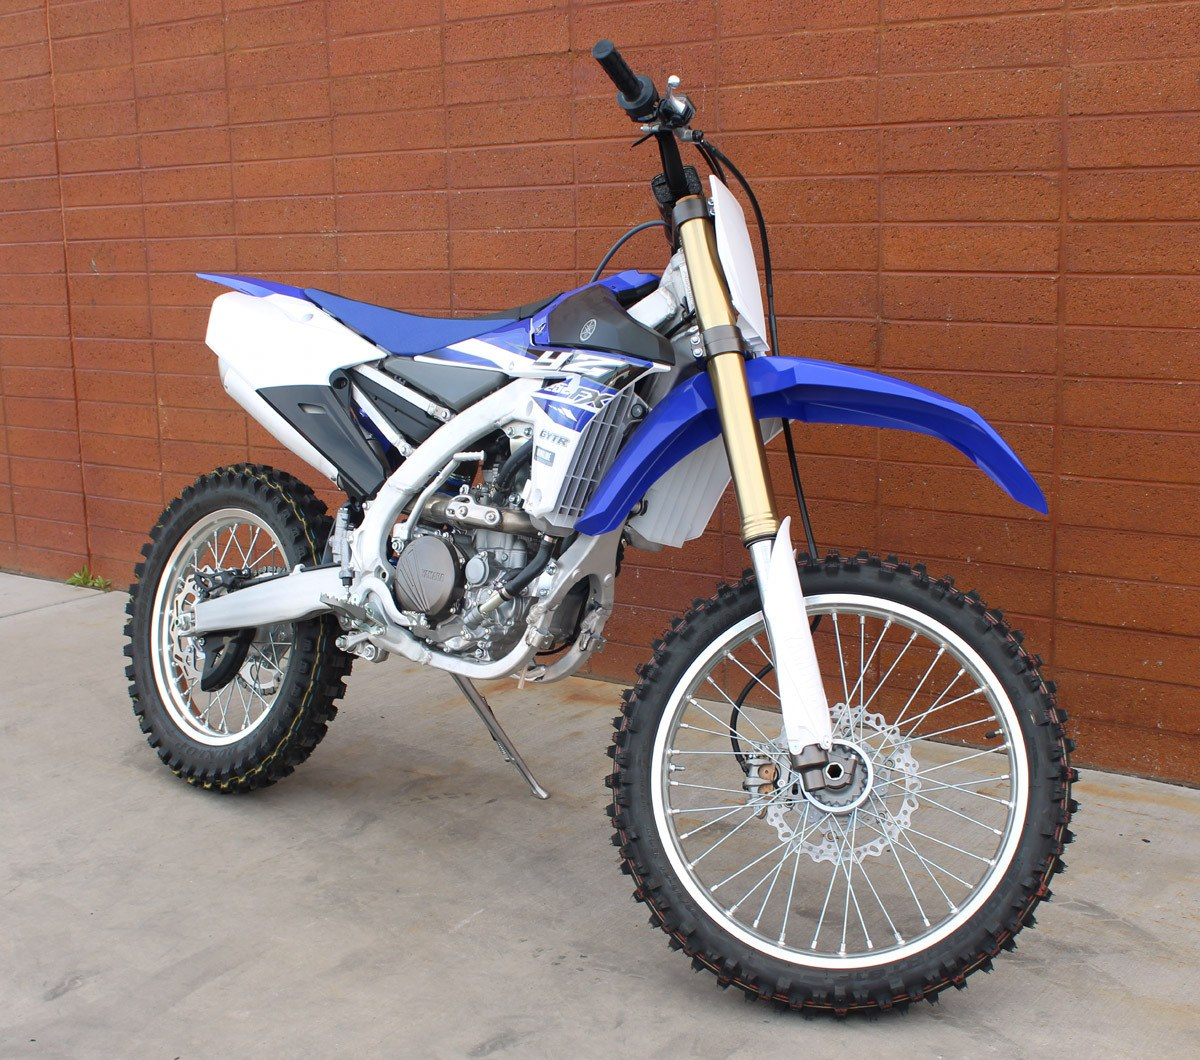 New 2015 yamaha yz250fx motorcycles in kingman az stock for Yamaha yz250fx for sale